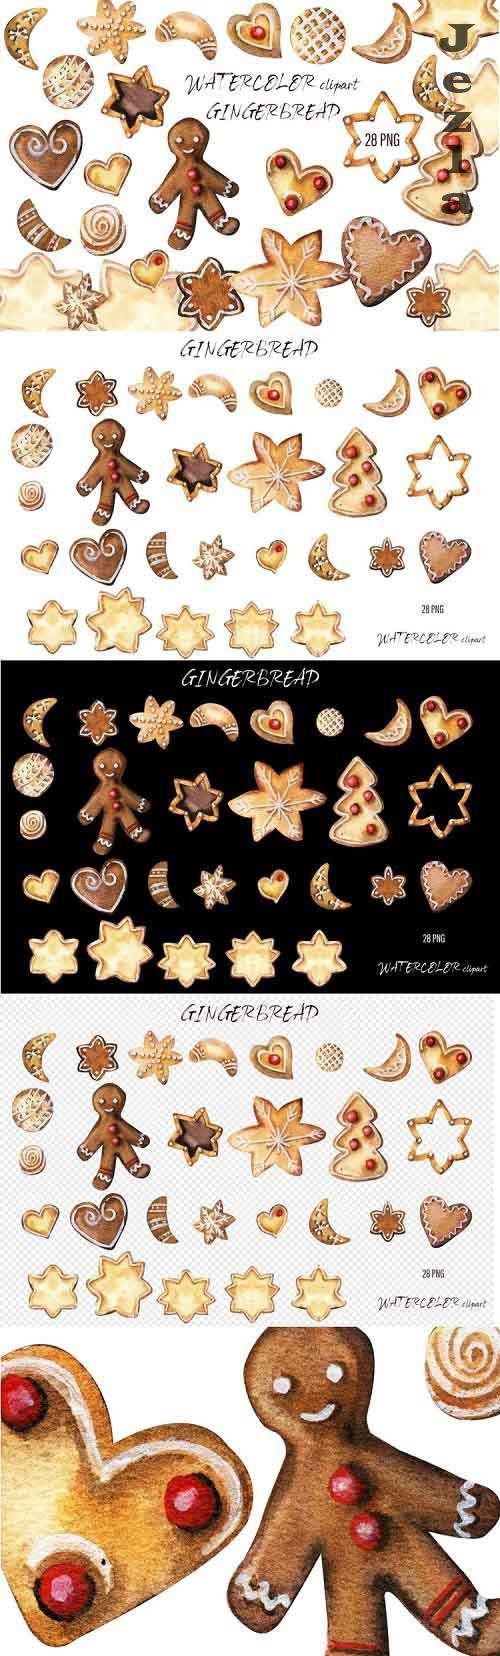 Christmas Gingerbread Watercolor Clipart - 1021052